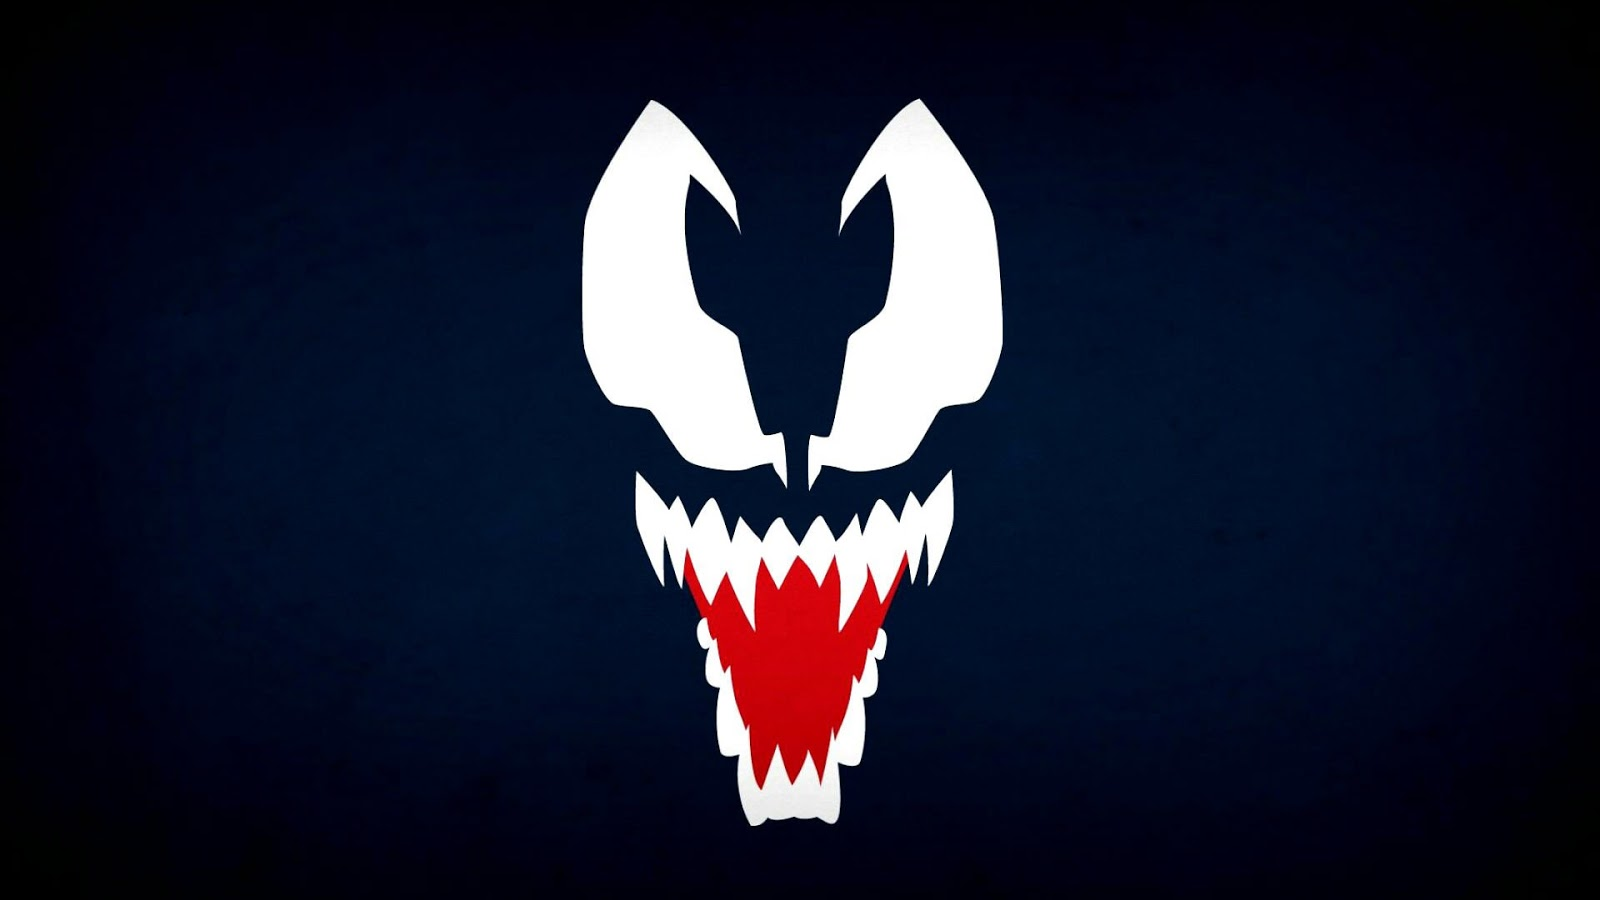 Venom Face Logo Scream at You